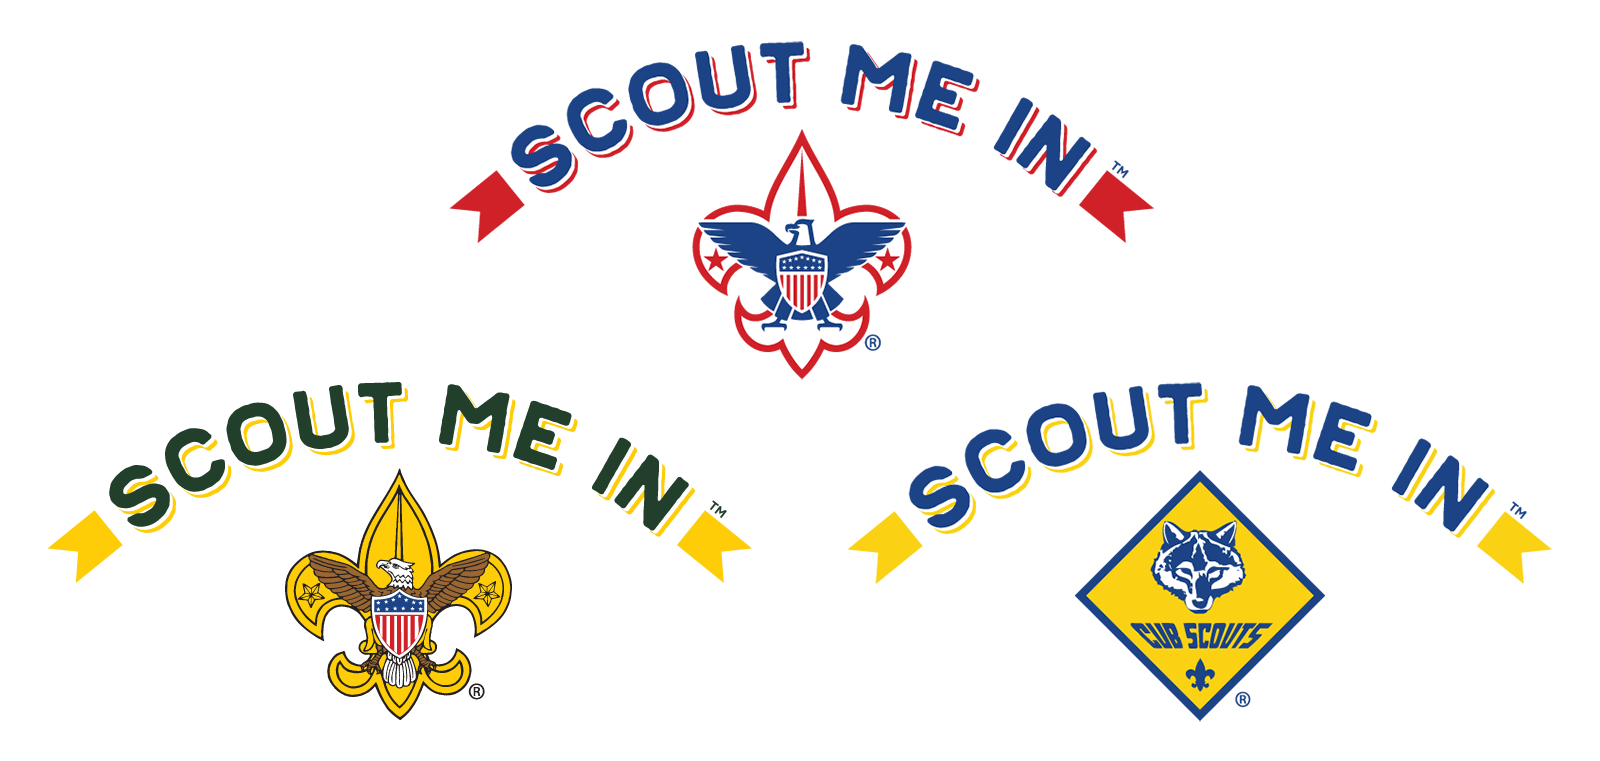 Fundraising clipart fete. Family scouting boy scouts